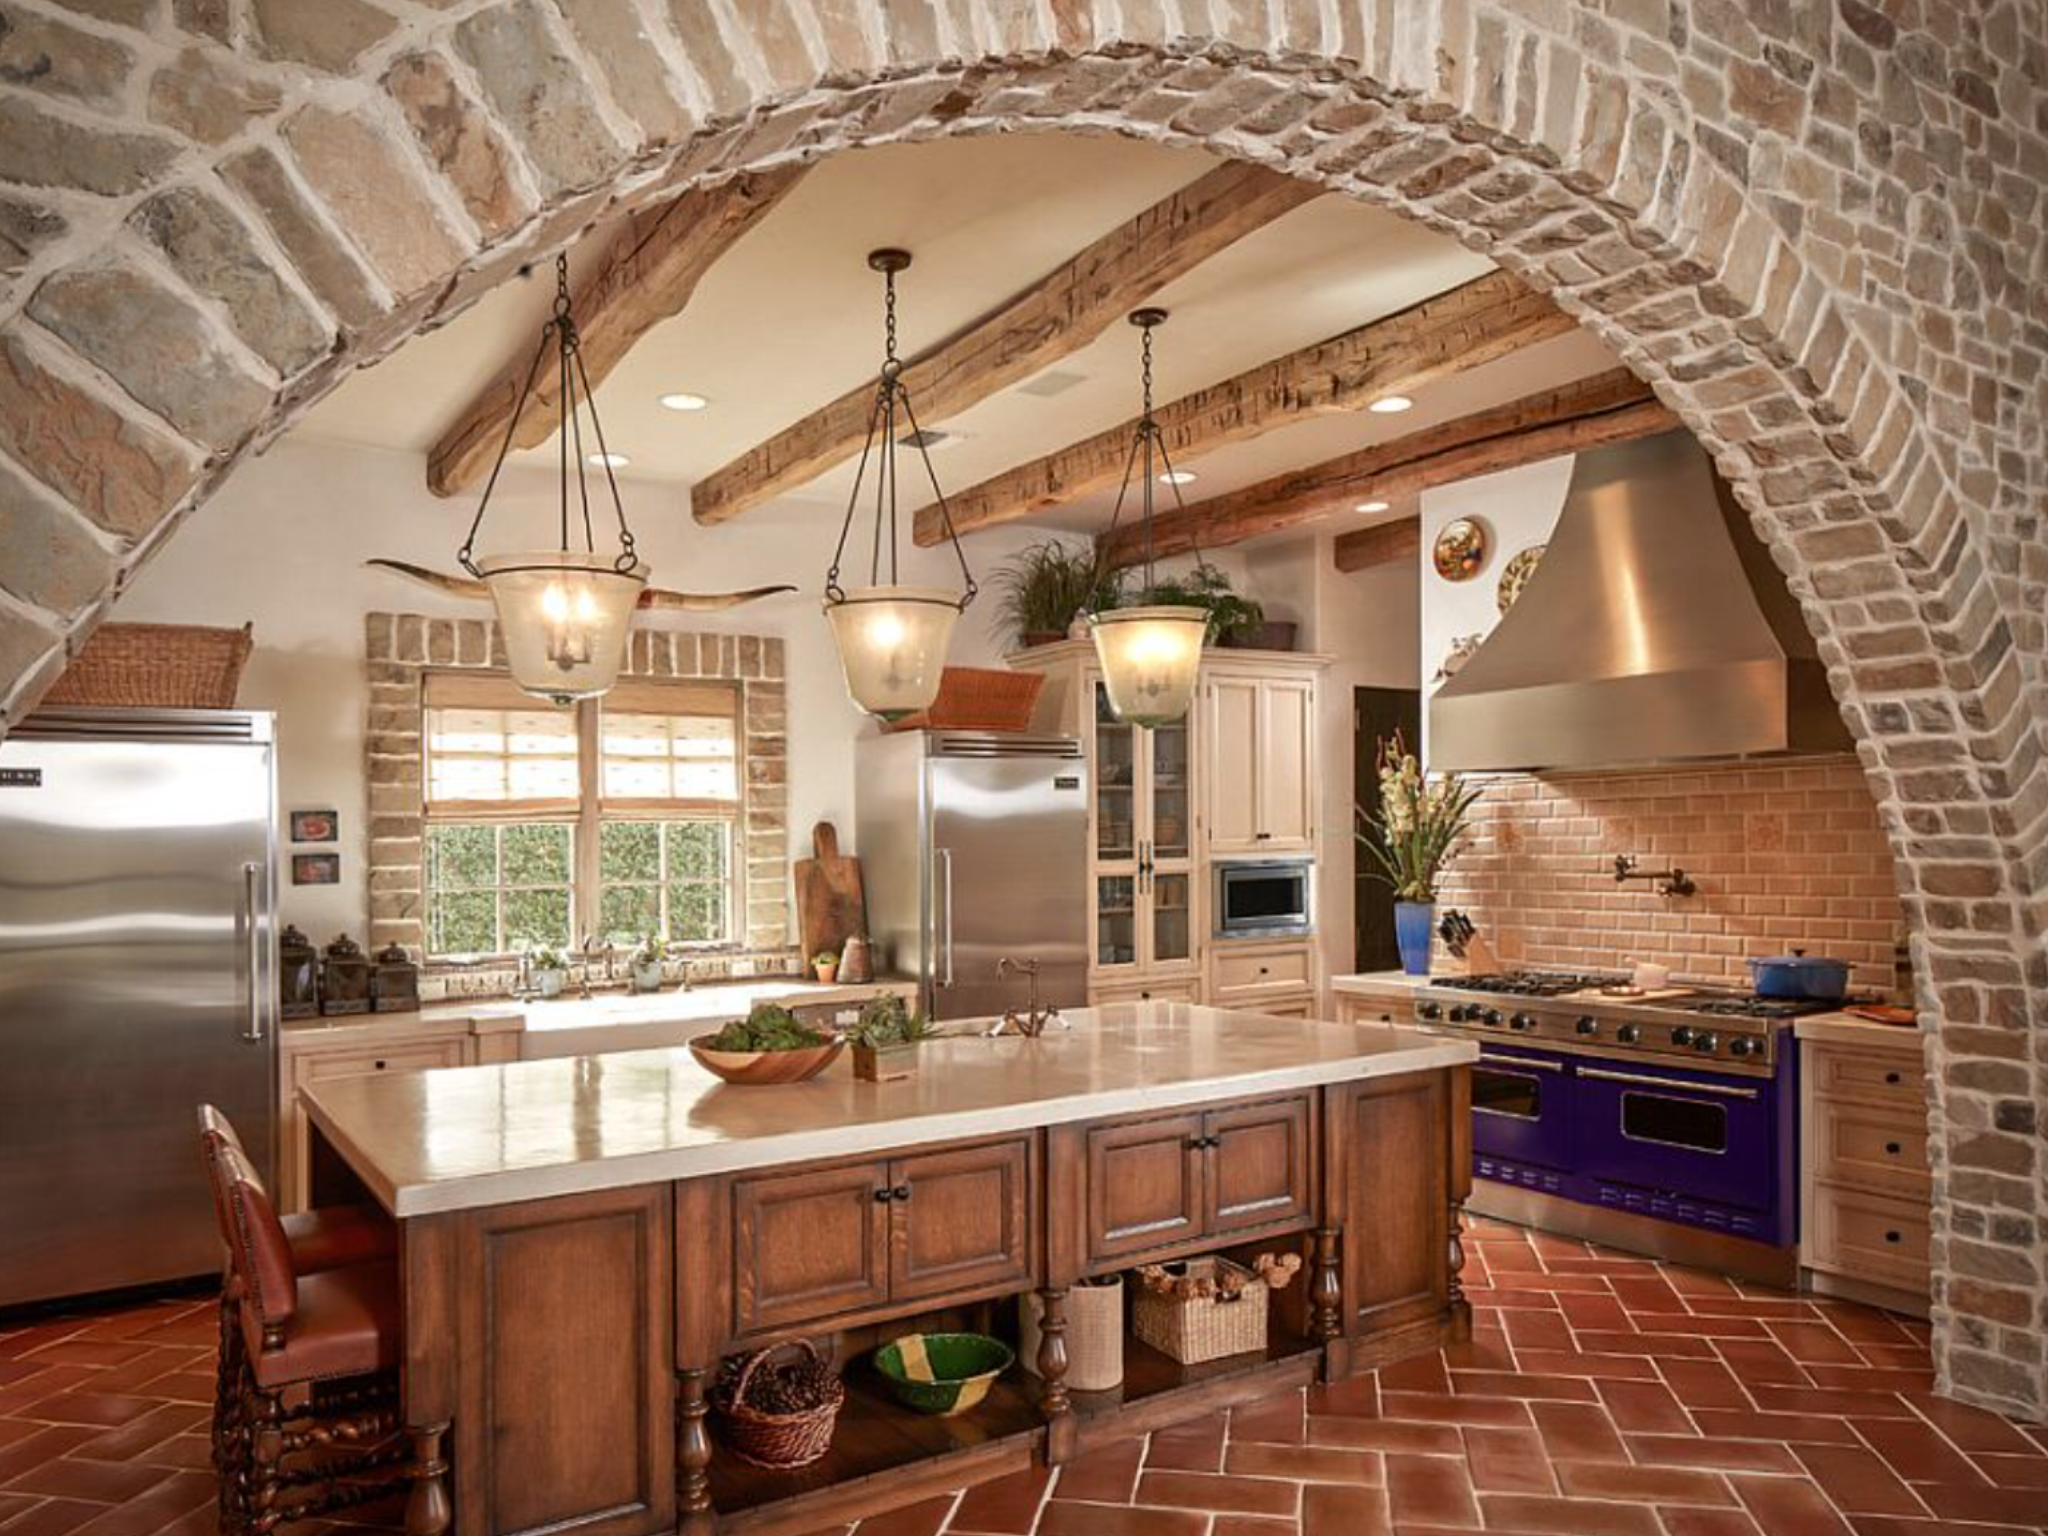 A Little Much But I Like This Concept Brick Kitchen